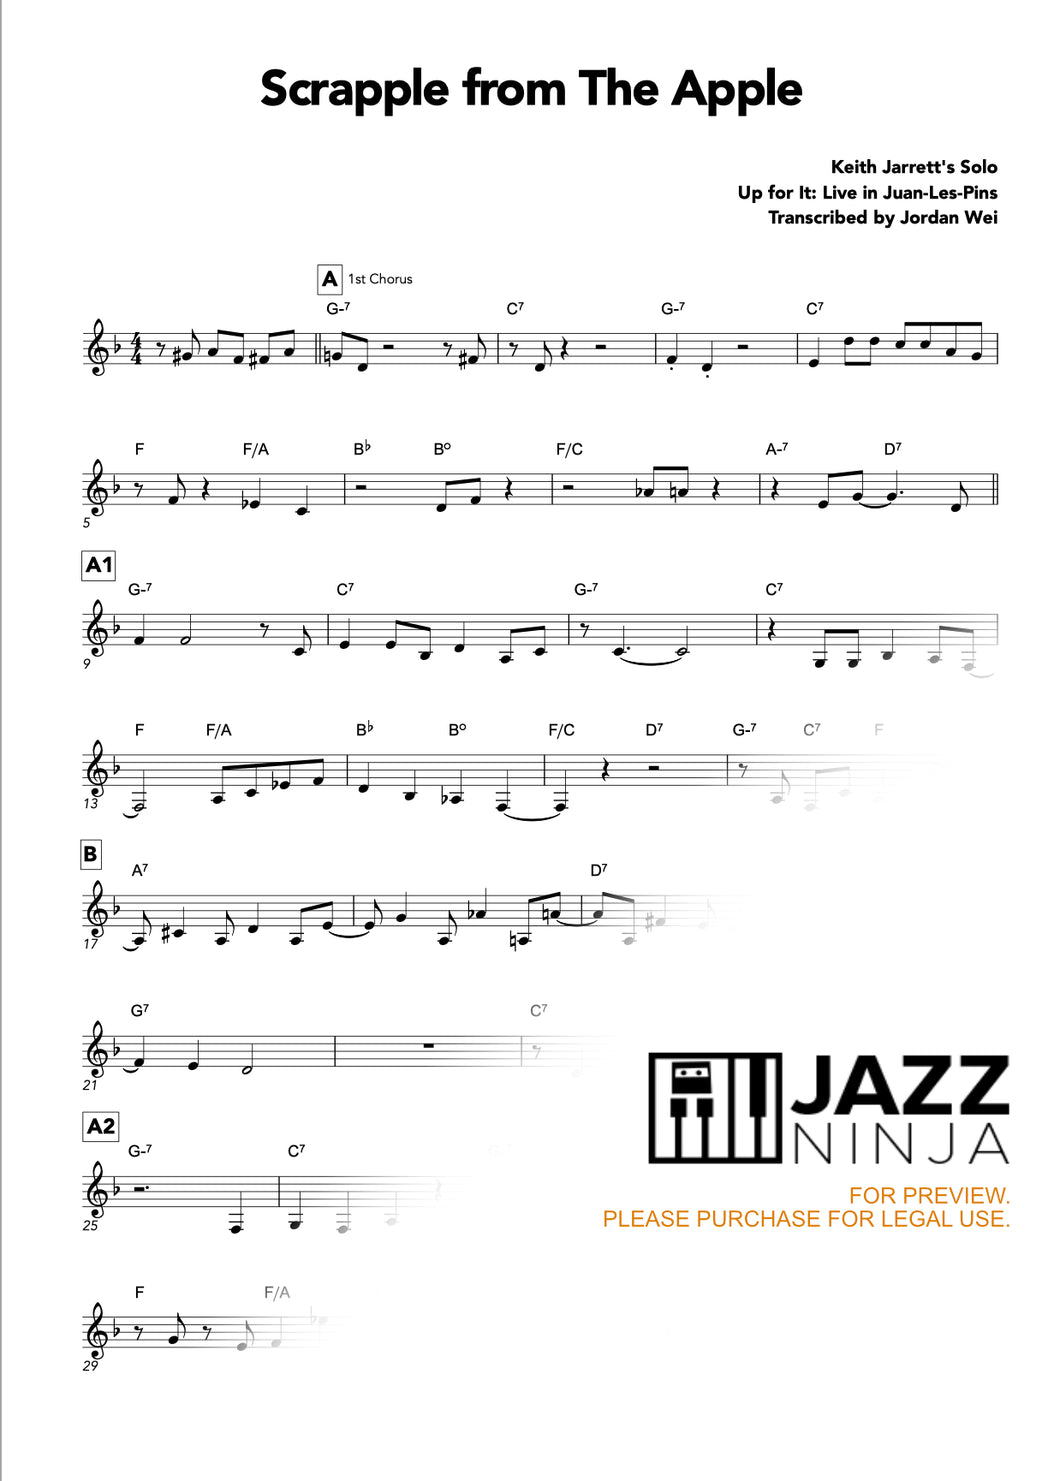 Keith Jarrett Scrapple From The Apple Full Score Jazzninja